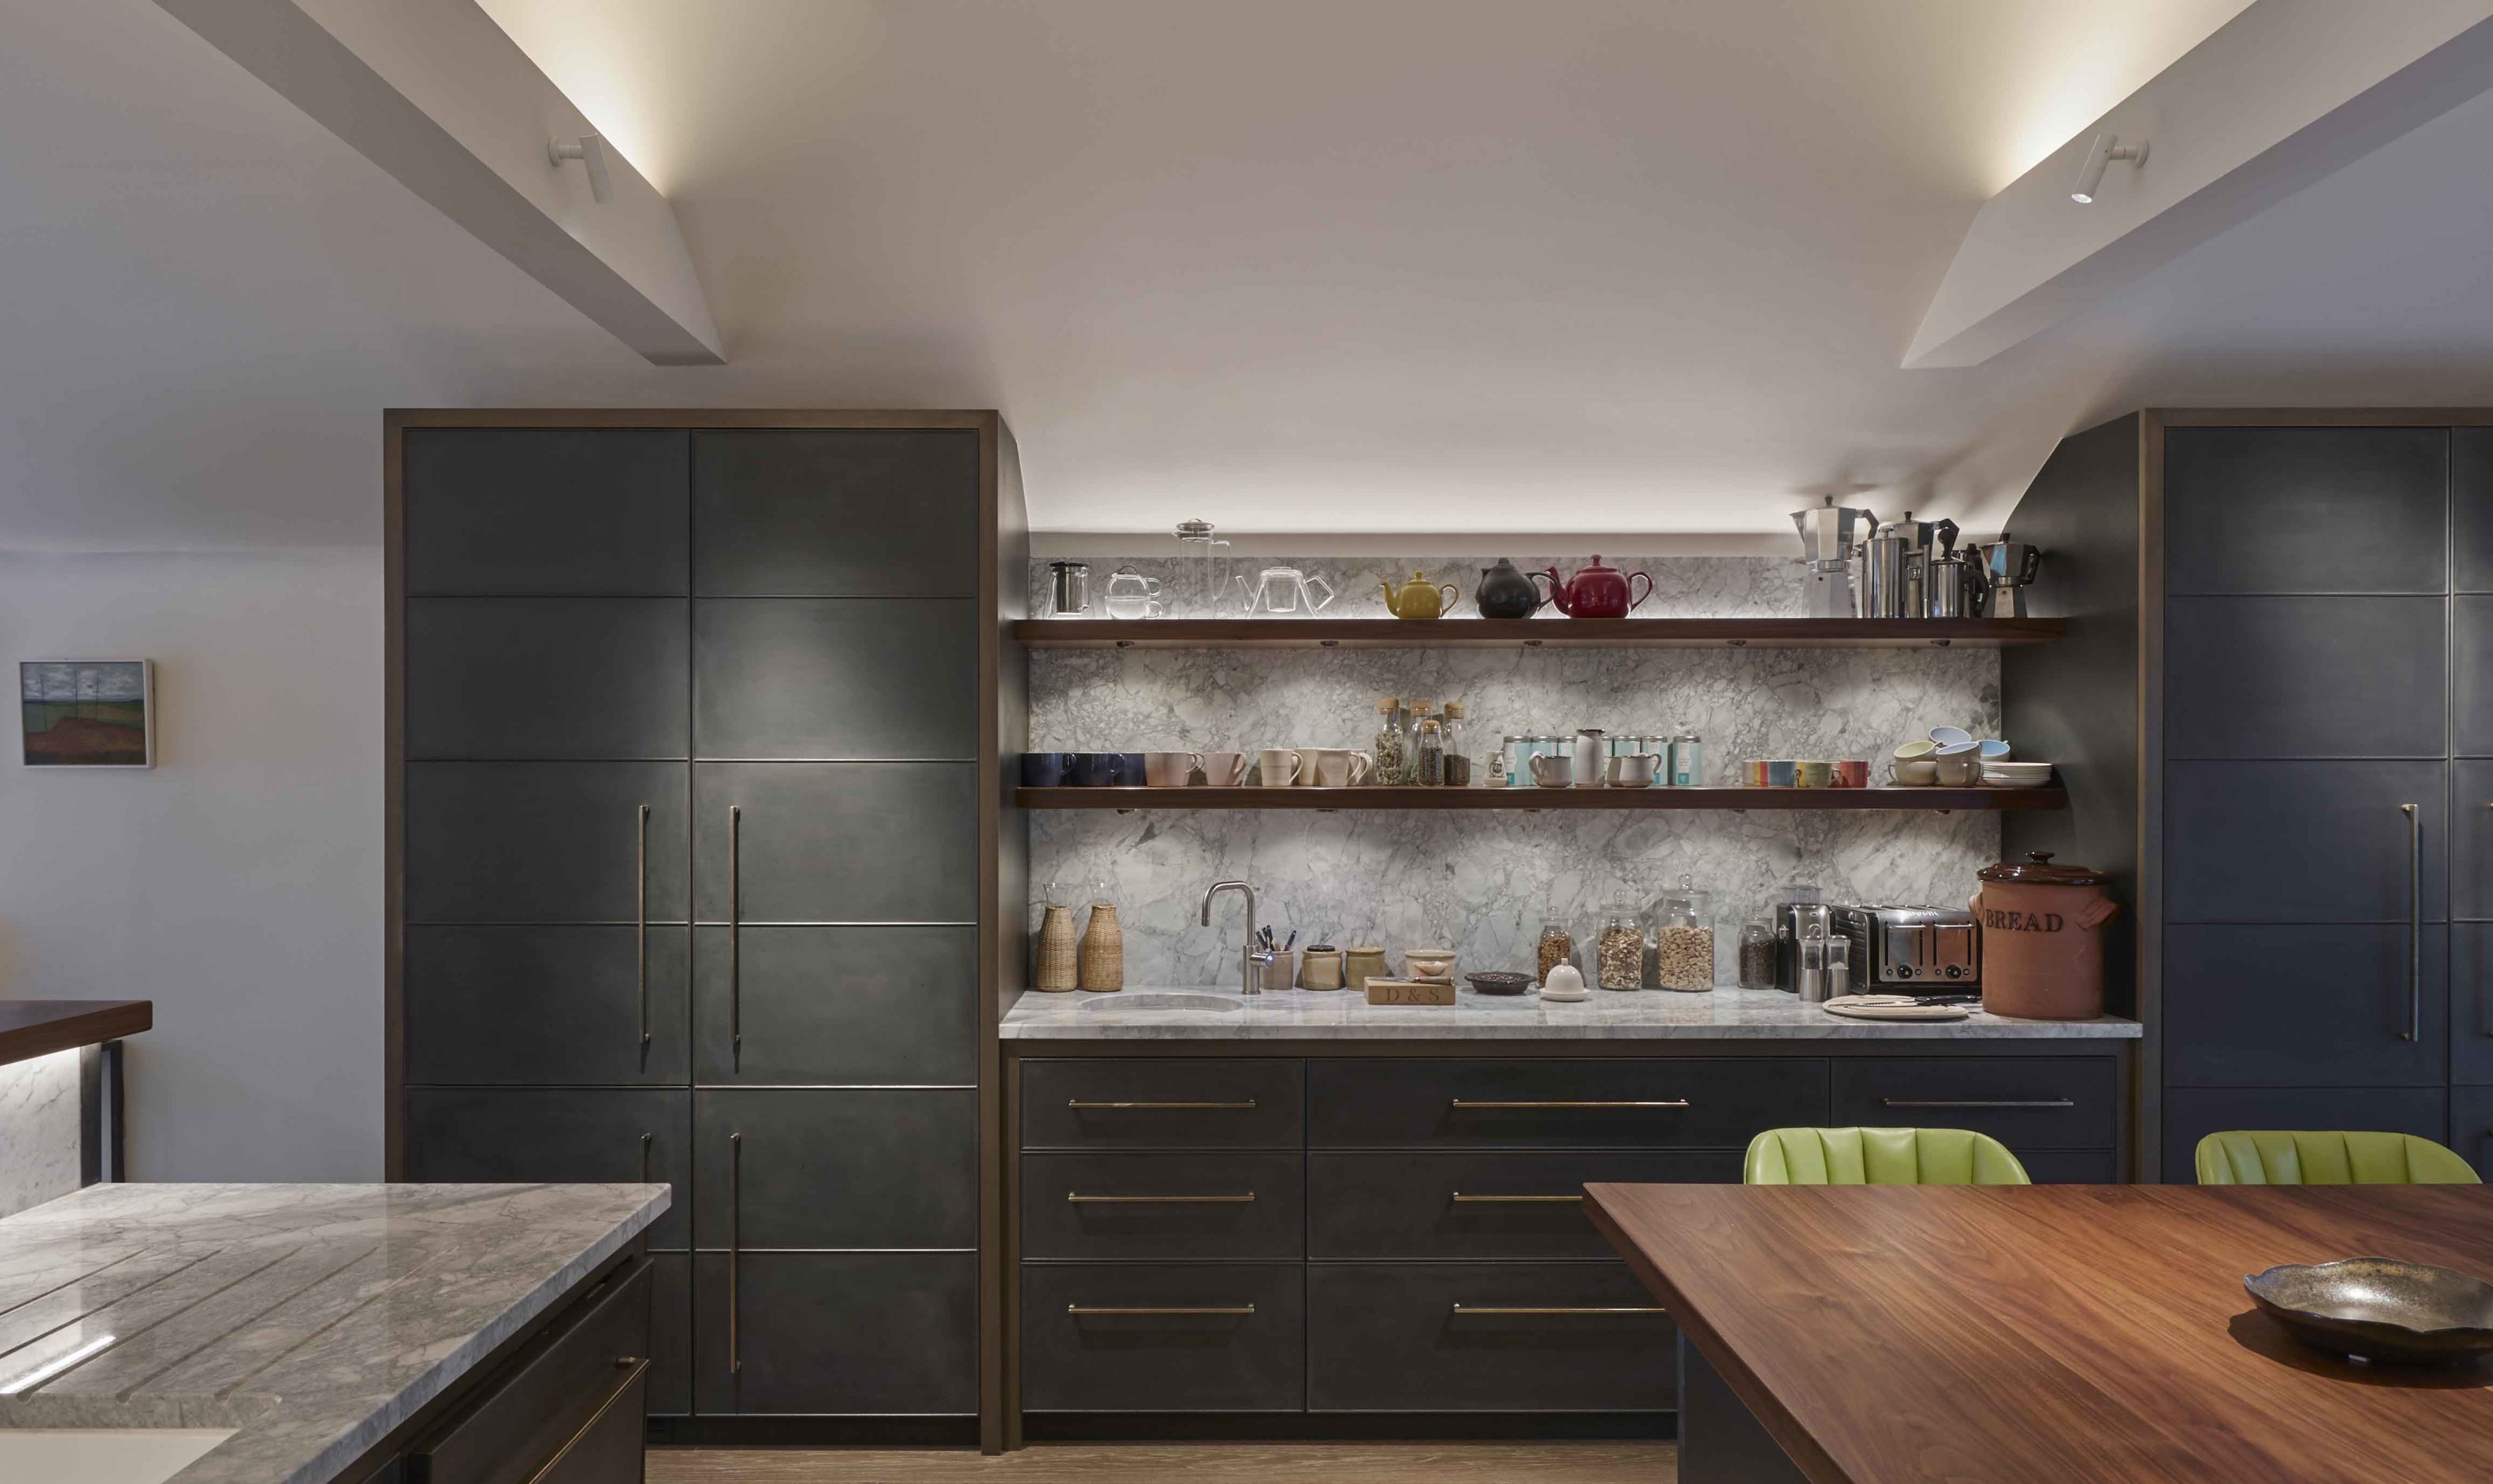 softly lit kitchen cabinets and open shelving